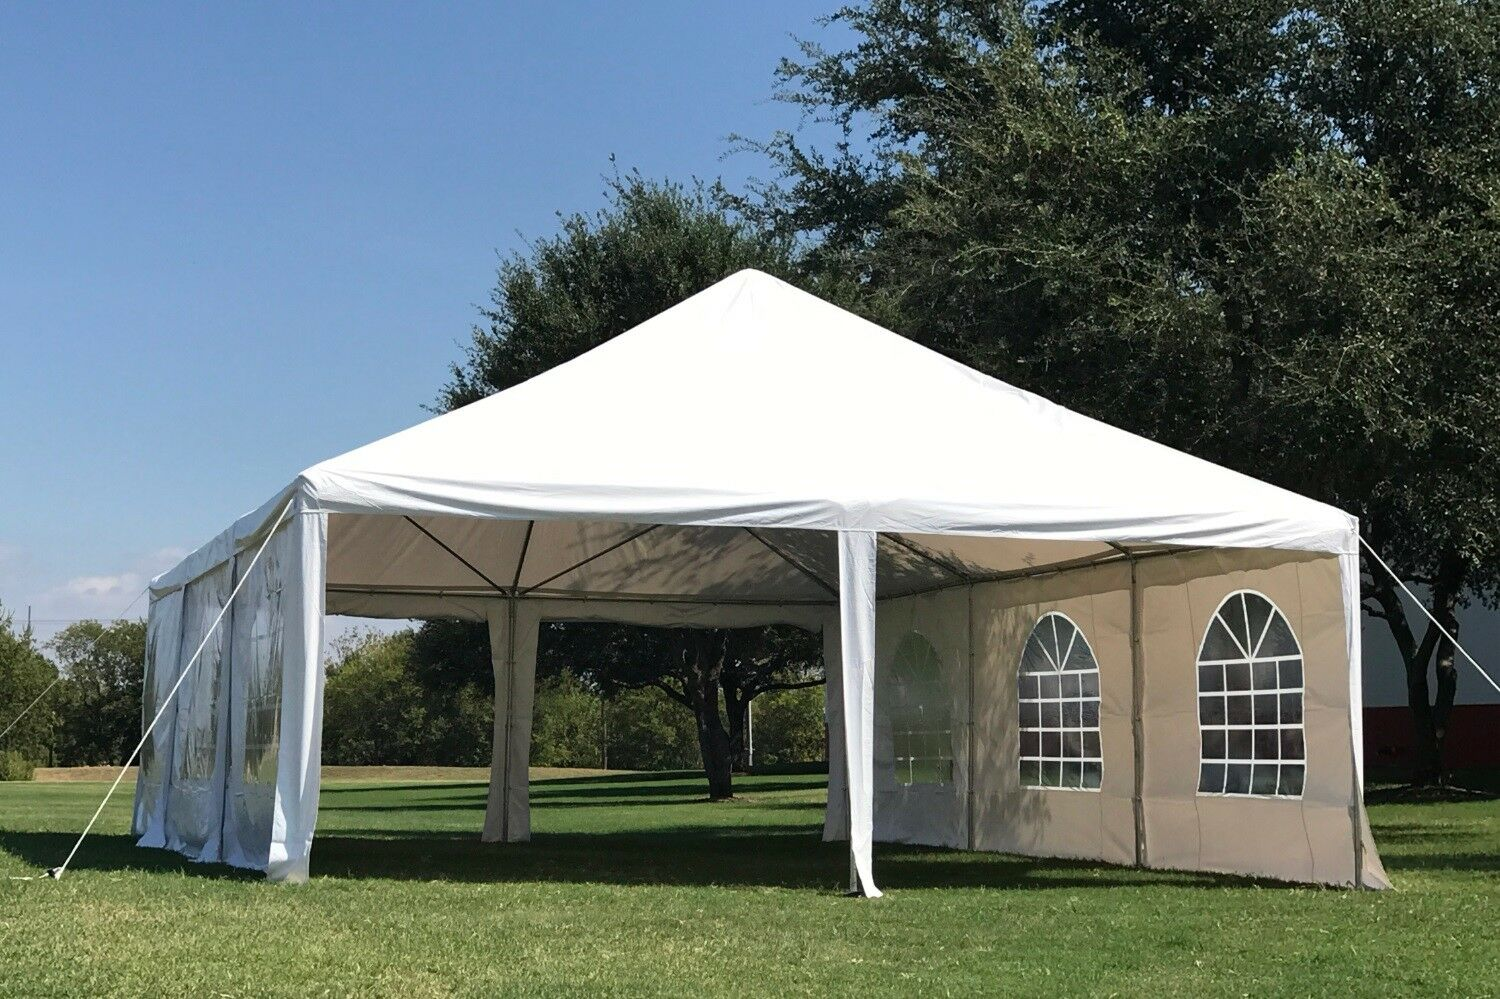 PVC Frame Tent Canopy - 3 Options - 30u0027 series Tent Short Bag and Long Bag & PVC Frame Tent Canopy - 3 Options - 30u0027 series Tent Short Bag ...